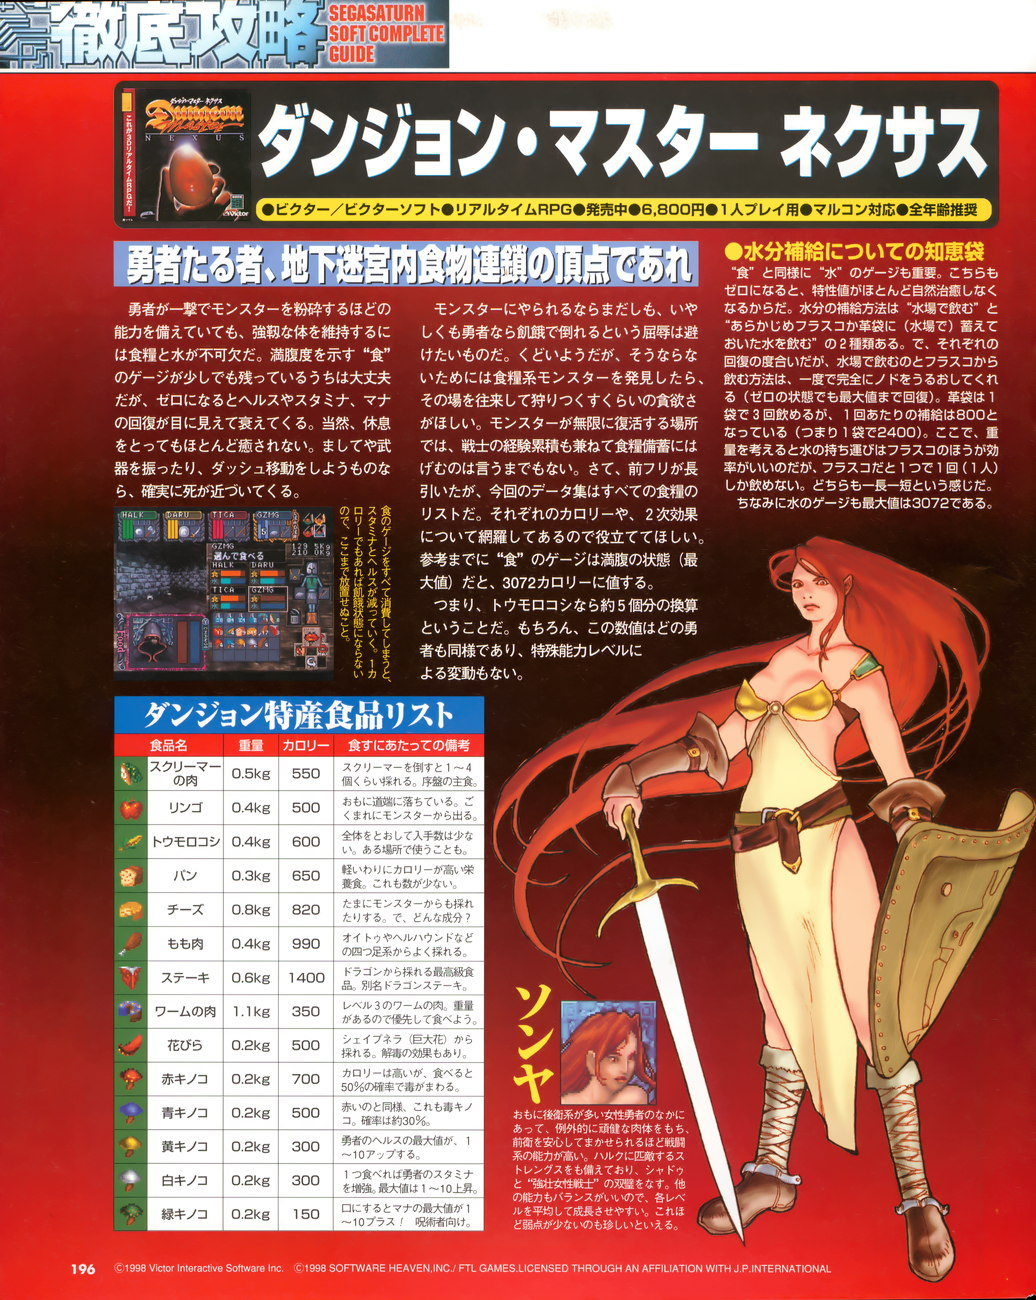 Dungeon Master Nexus Guide published in Japanese magazine 'Sega Saturn Magazine', Vol 14 08 May 1998, Page 196